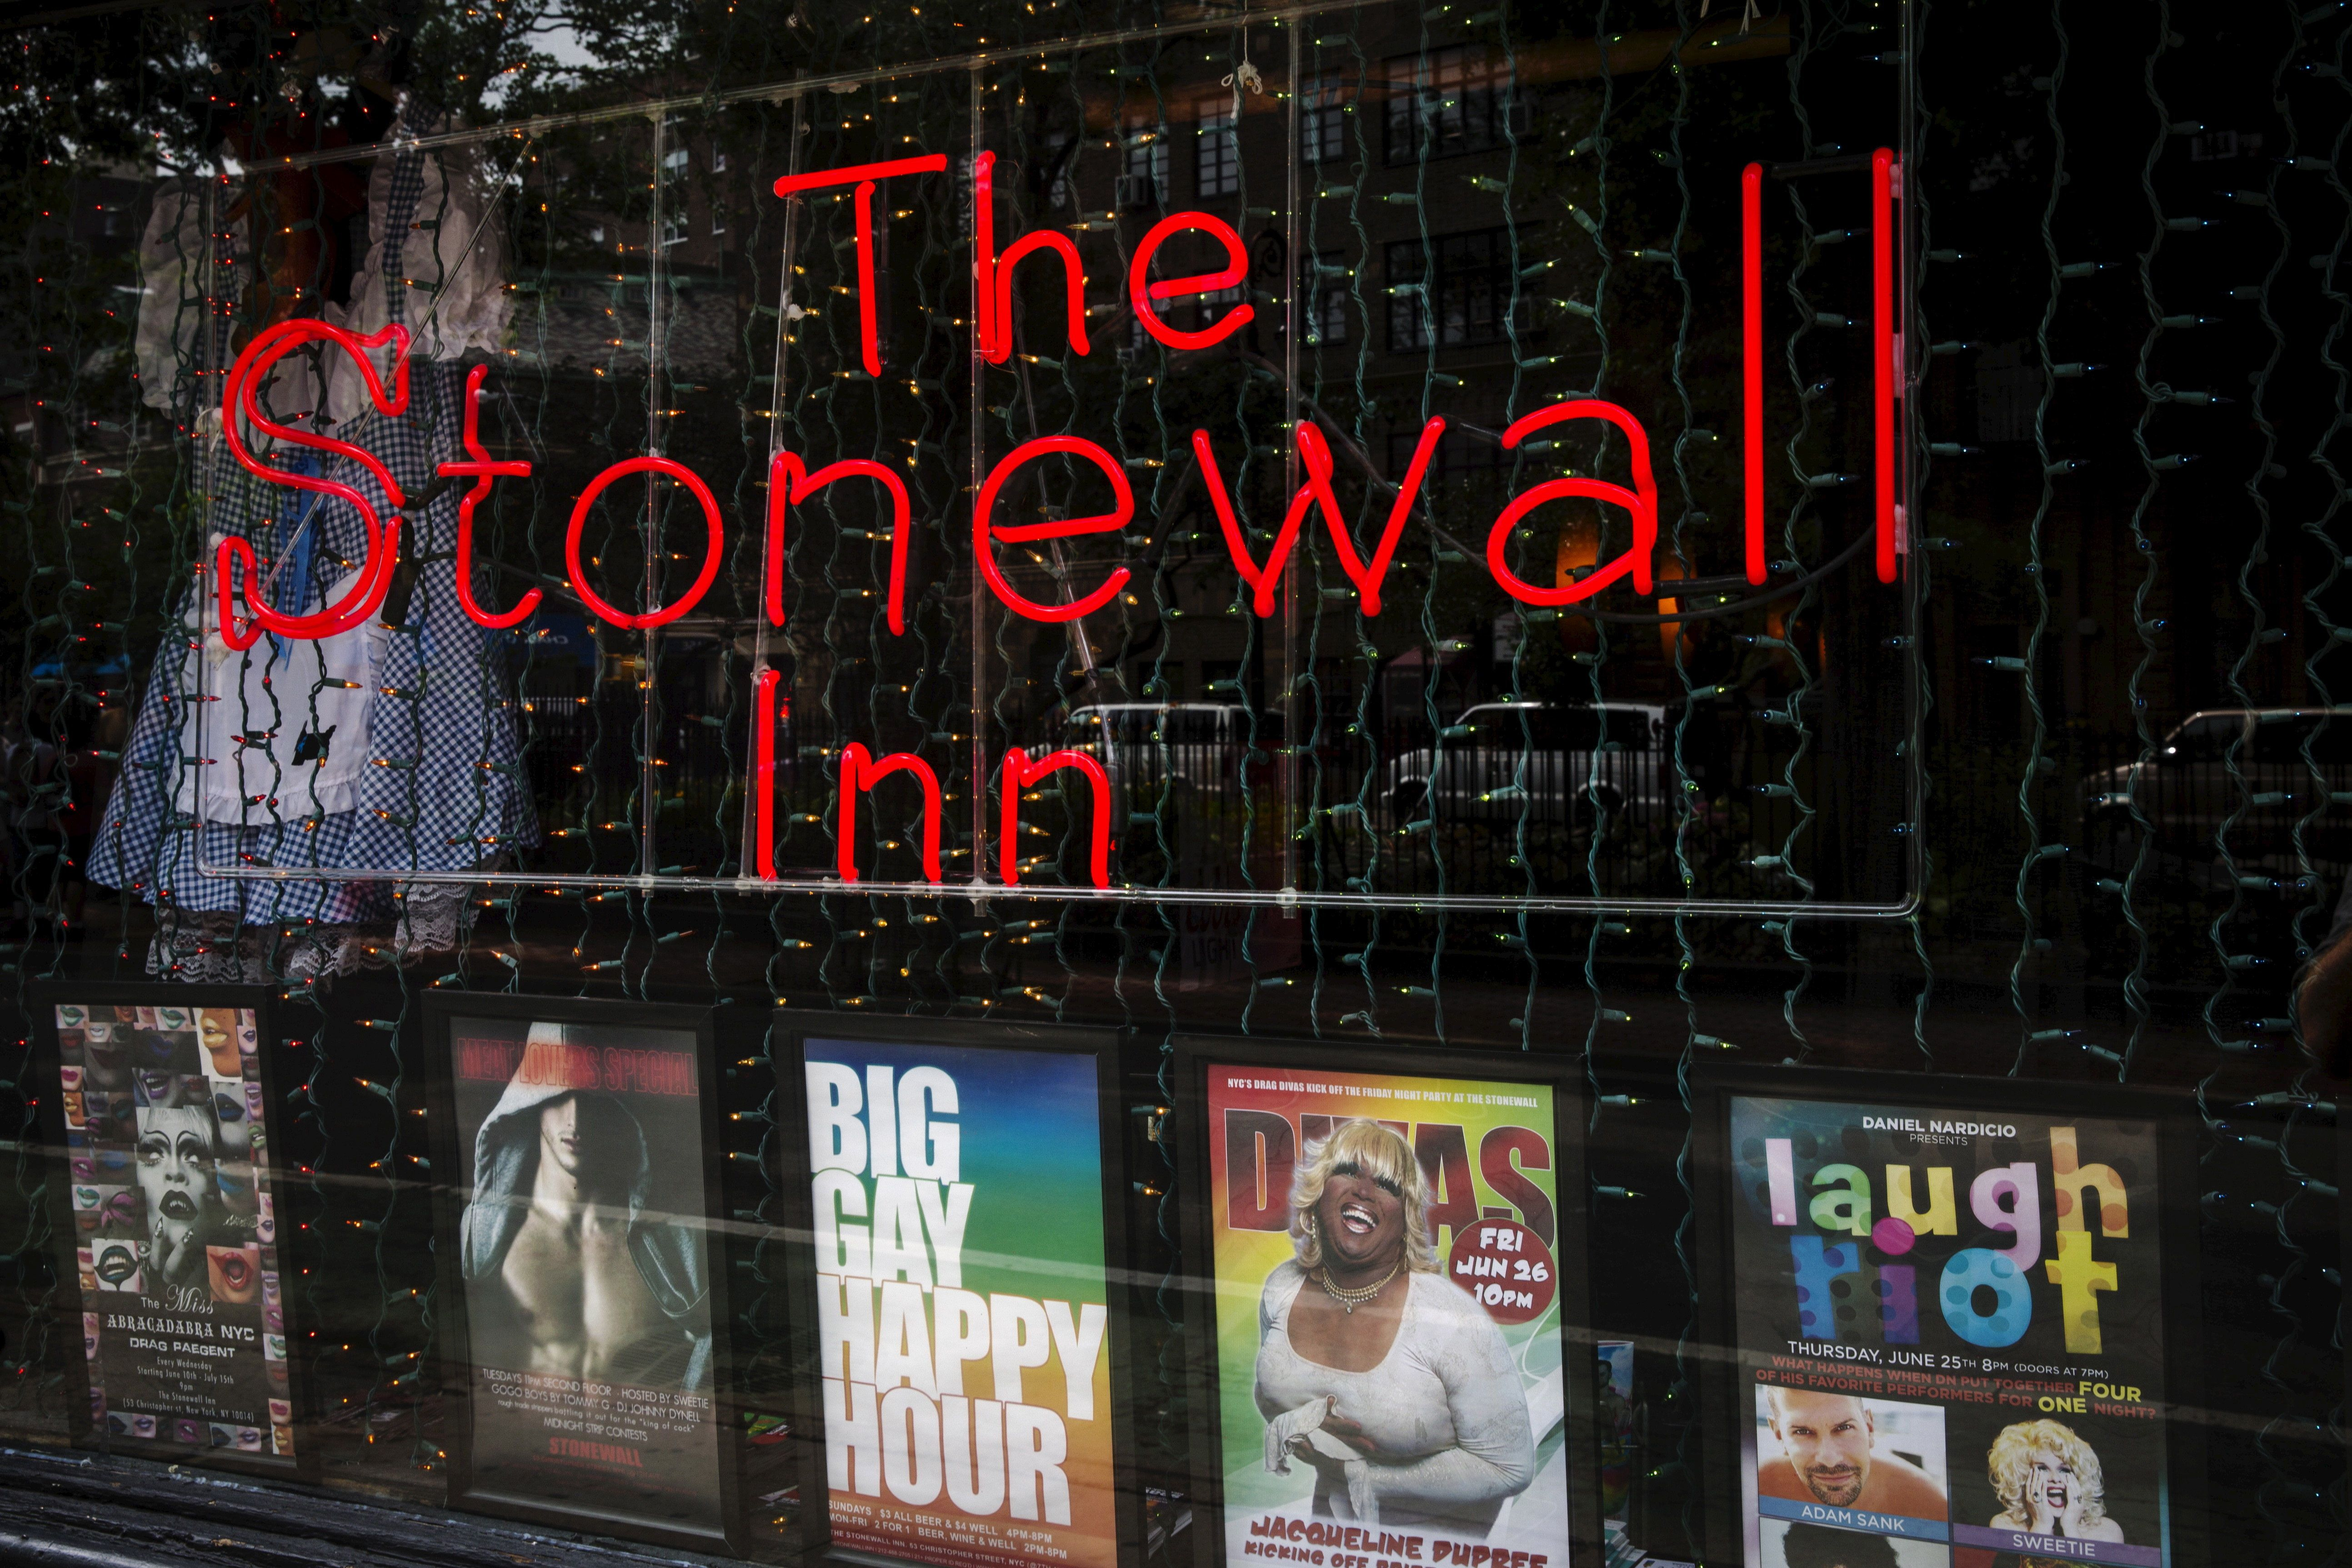 A neon sign shines in the window of the Stonewall Inn in New York, June 23, 2015. The New York City bar that grew into a cultural icon due to its pivotal role in the birth of the gay rights movement, the Stonewall Inn, was granted the historic status of landmark by city officials on Tuesday. REUTERS/Lucas Jackson